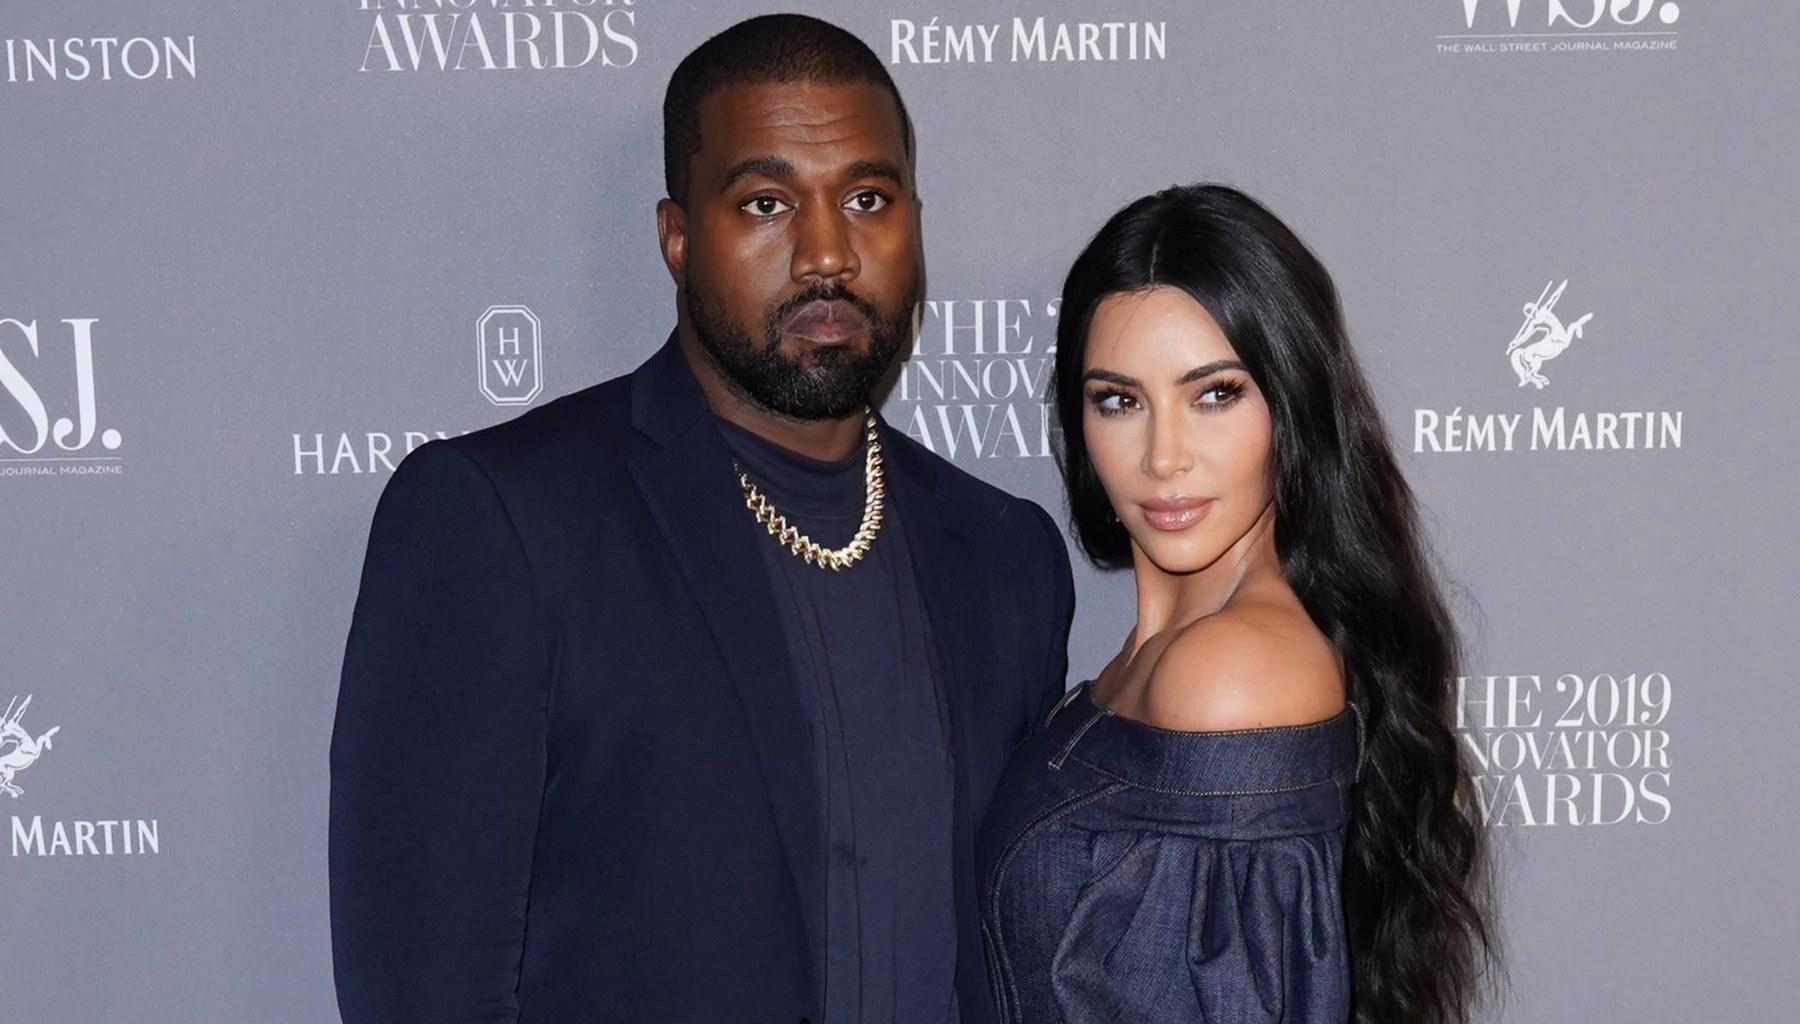 Kanye West Takes Drastic Measures Against Kim Kardashian